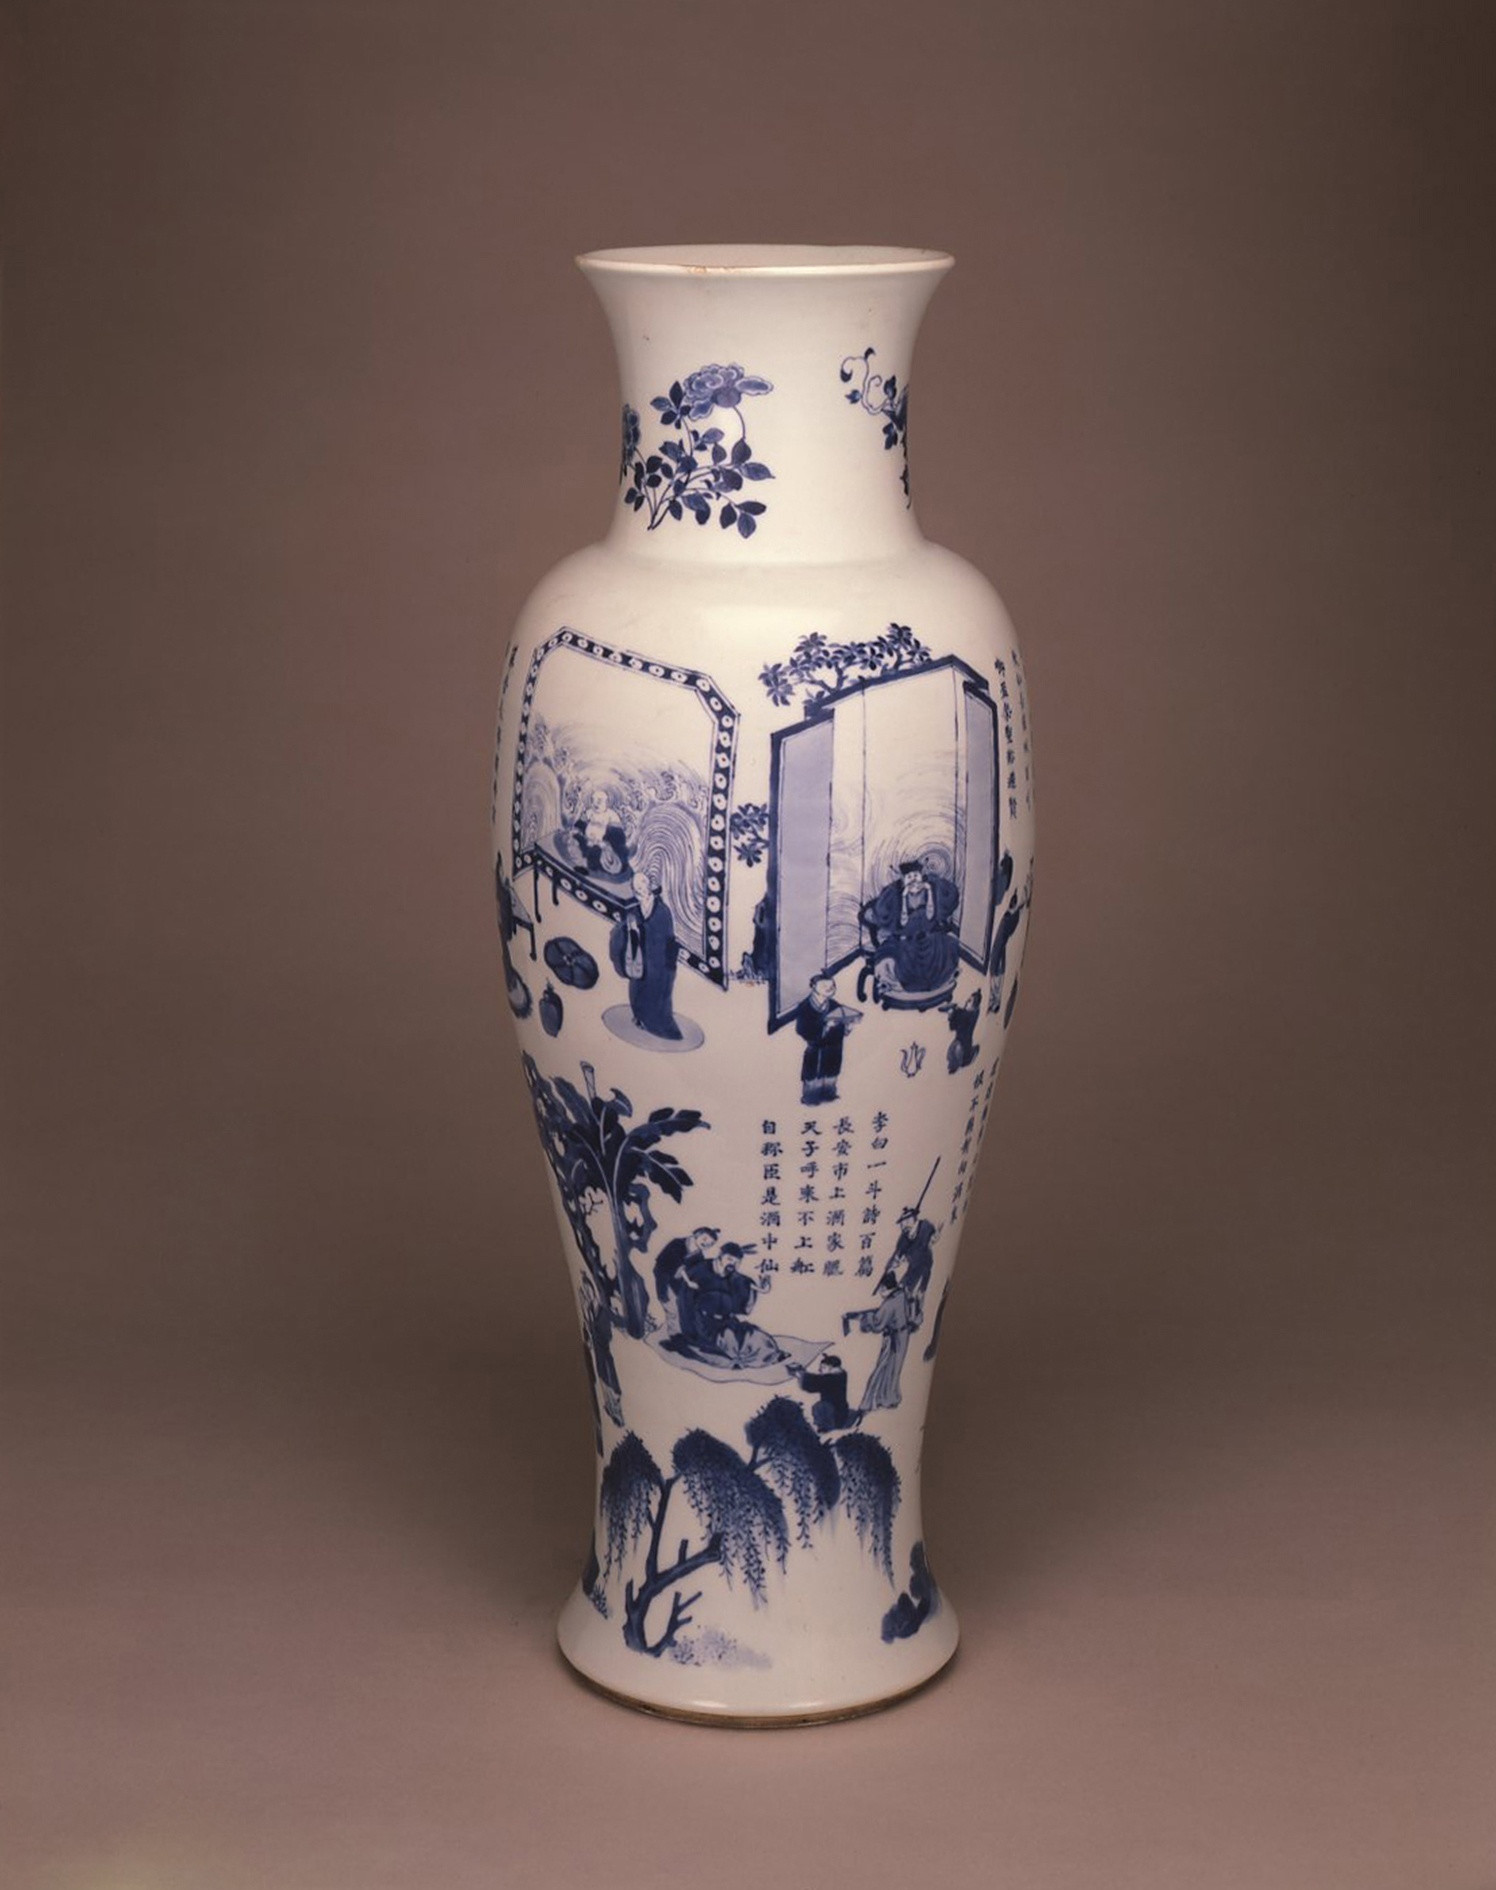 19 Wonderful White Urn Vase